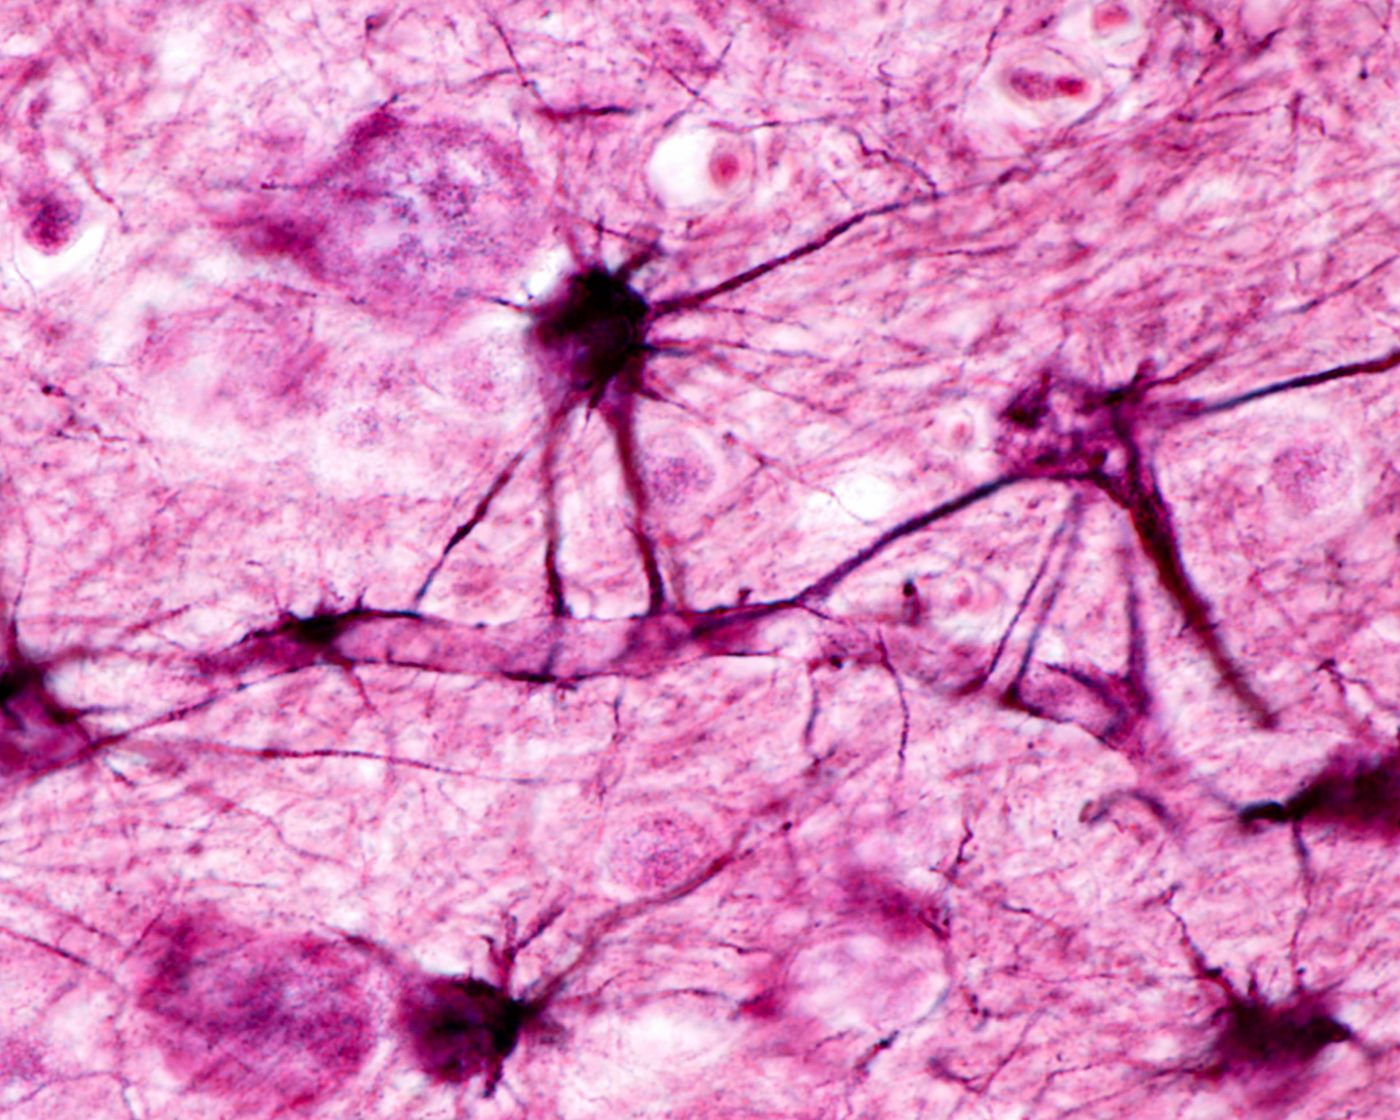 Astrocytes Play a Role in Neurodegenerative Diseases